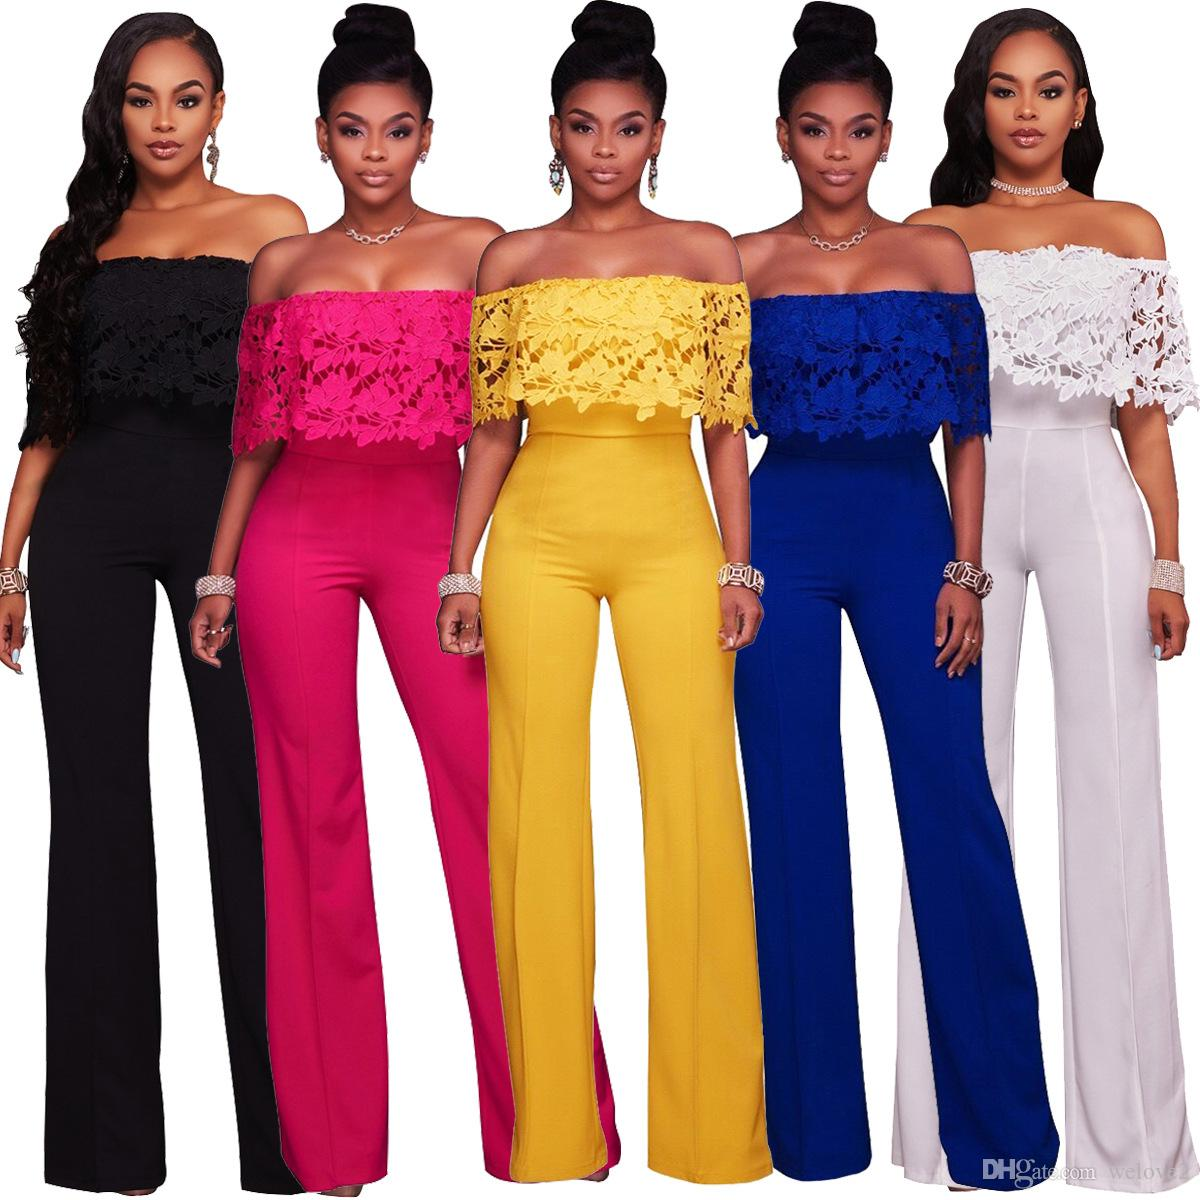 88c55c351314 2019 Fashion Elegant Rompers Womens Jumpsuit Off Shoulder Ruffles  White Black Yellow Bodysuit Strapless Loose Slim Casual Overalls Plus Size  XXL From ...